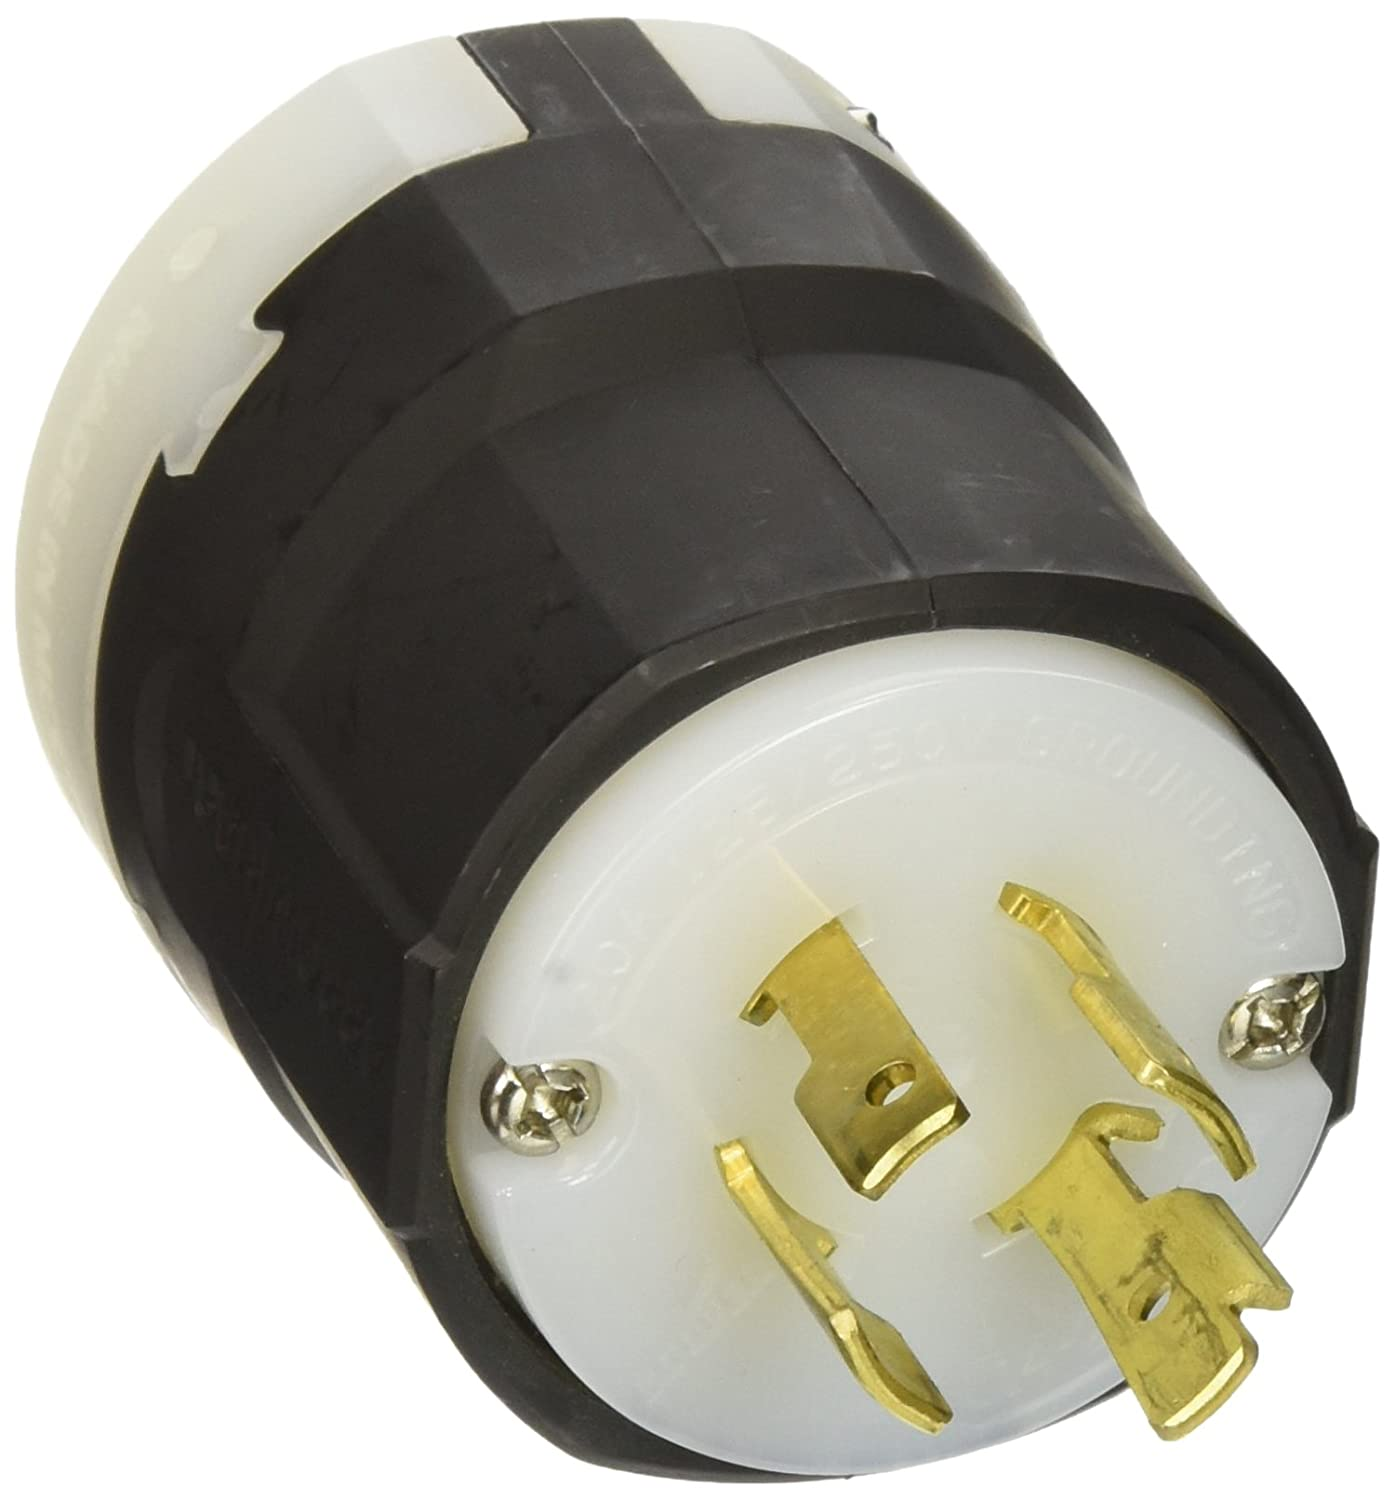 EATON L1420P 20-Amp 125/250-Volt Hart-Lock Industrial Grade Plug with Safety Grip, Black and White